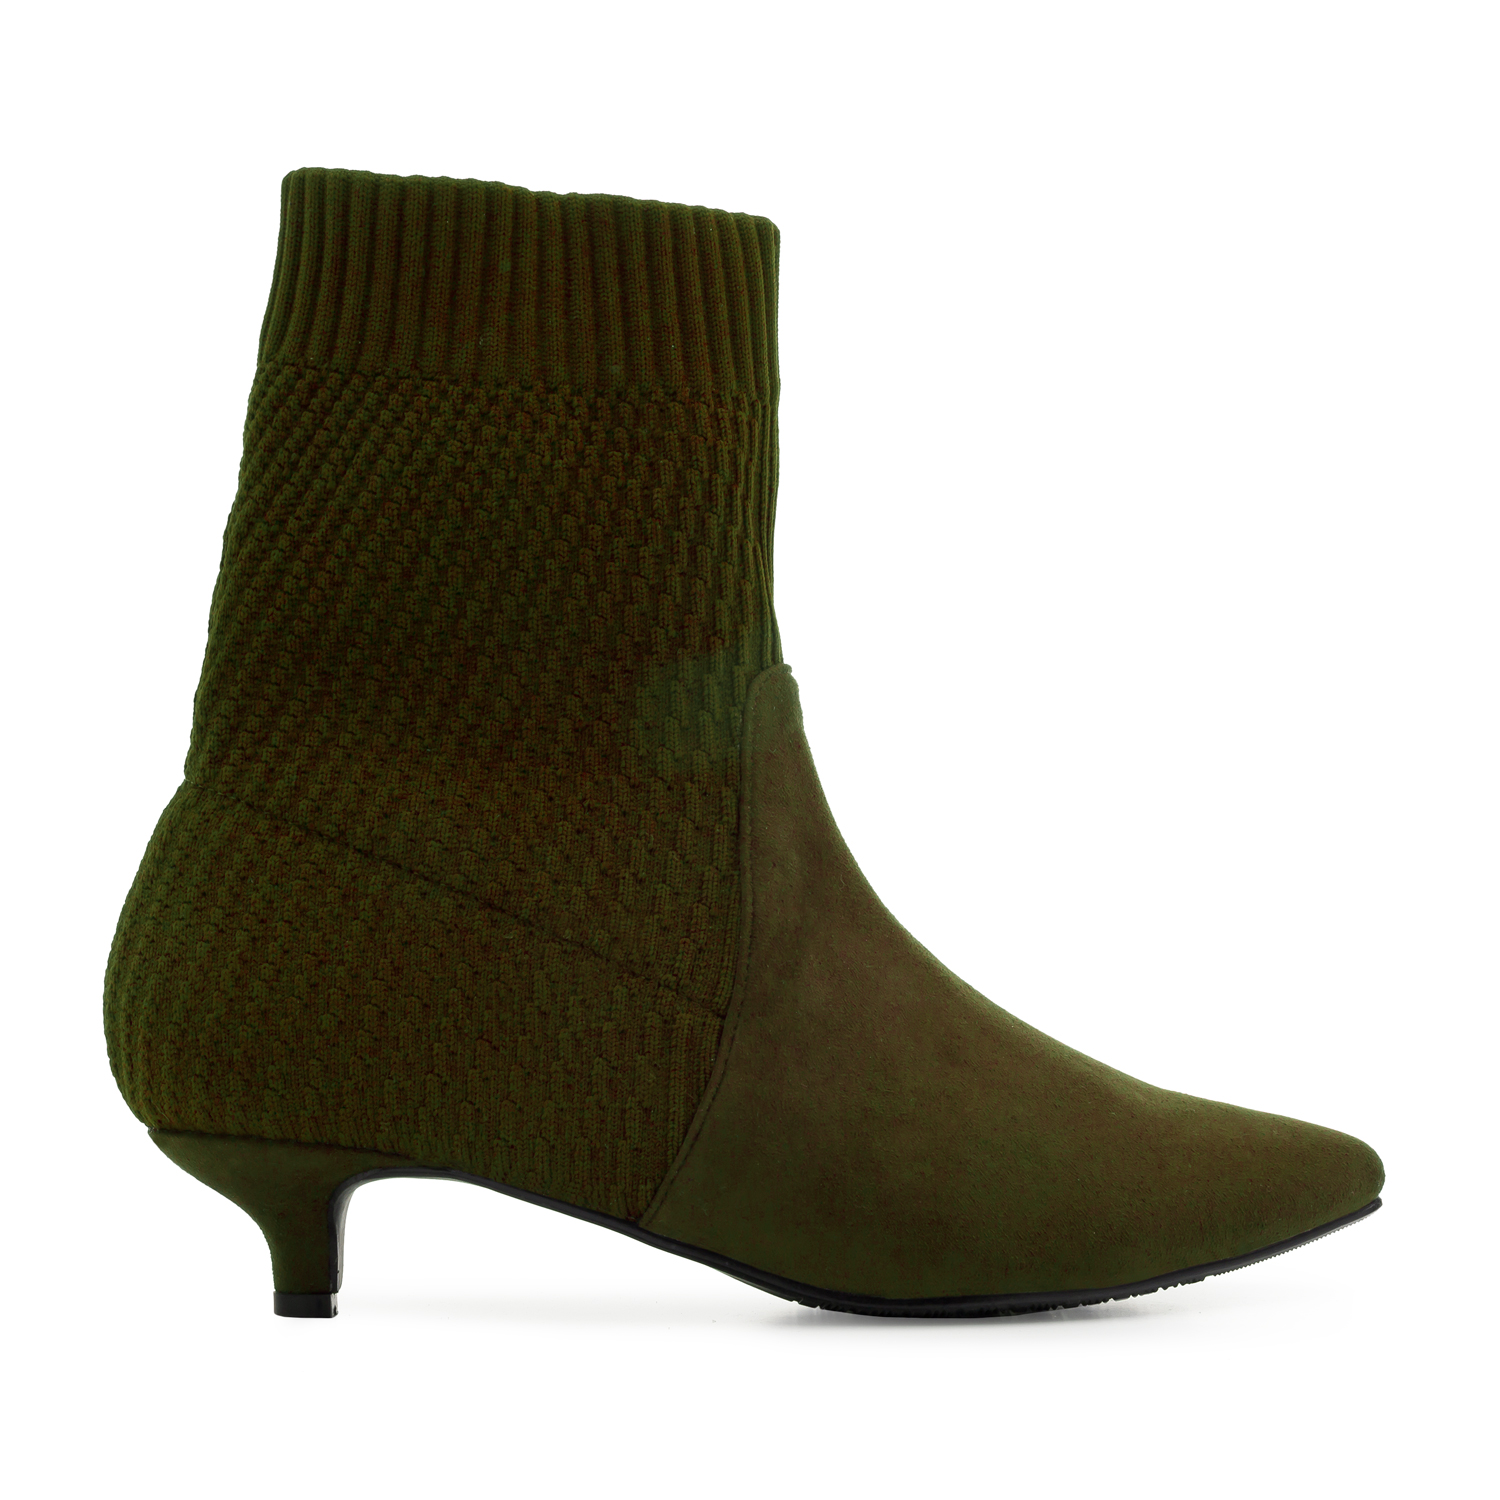 Sock Booties in Olive Green Suede